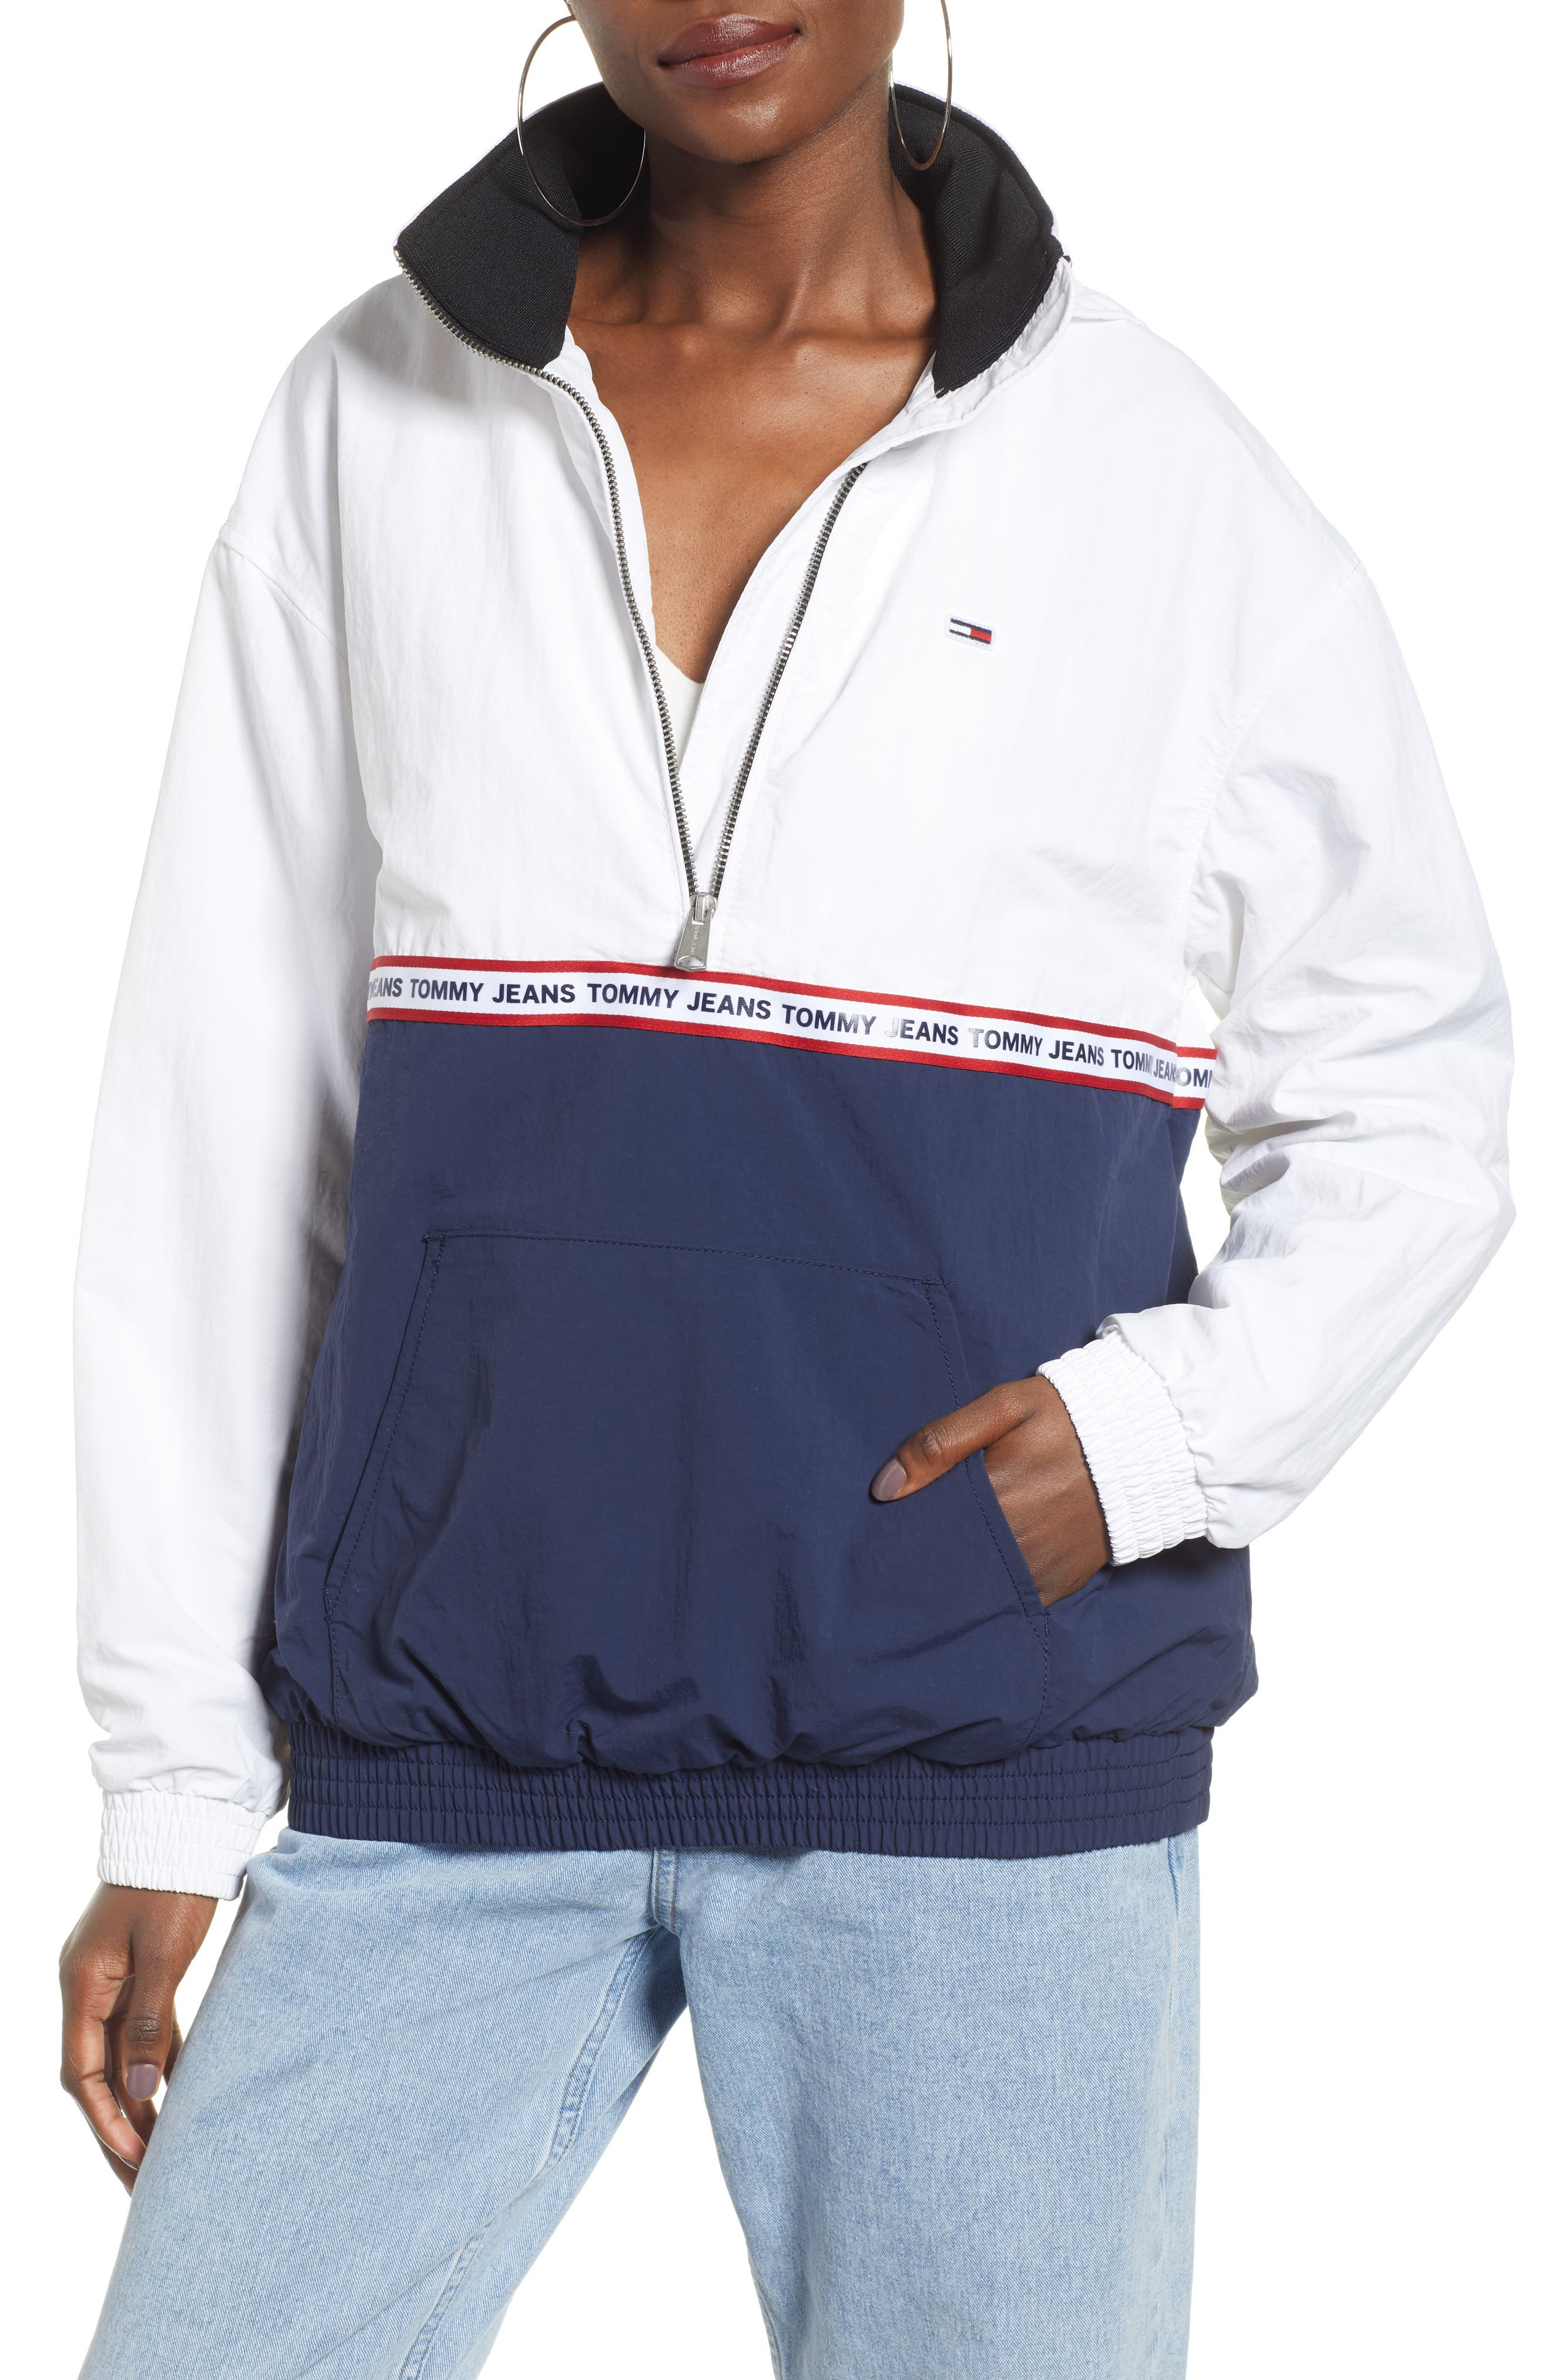 TOMMY JEANS,                             TJW Logo Tape Pullover,                             Main thumbnail 1, color,                             400